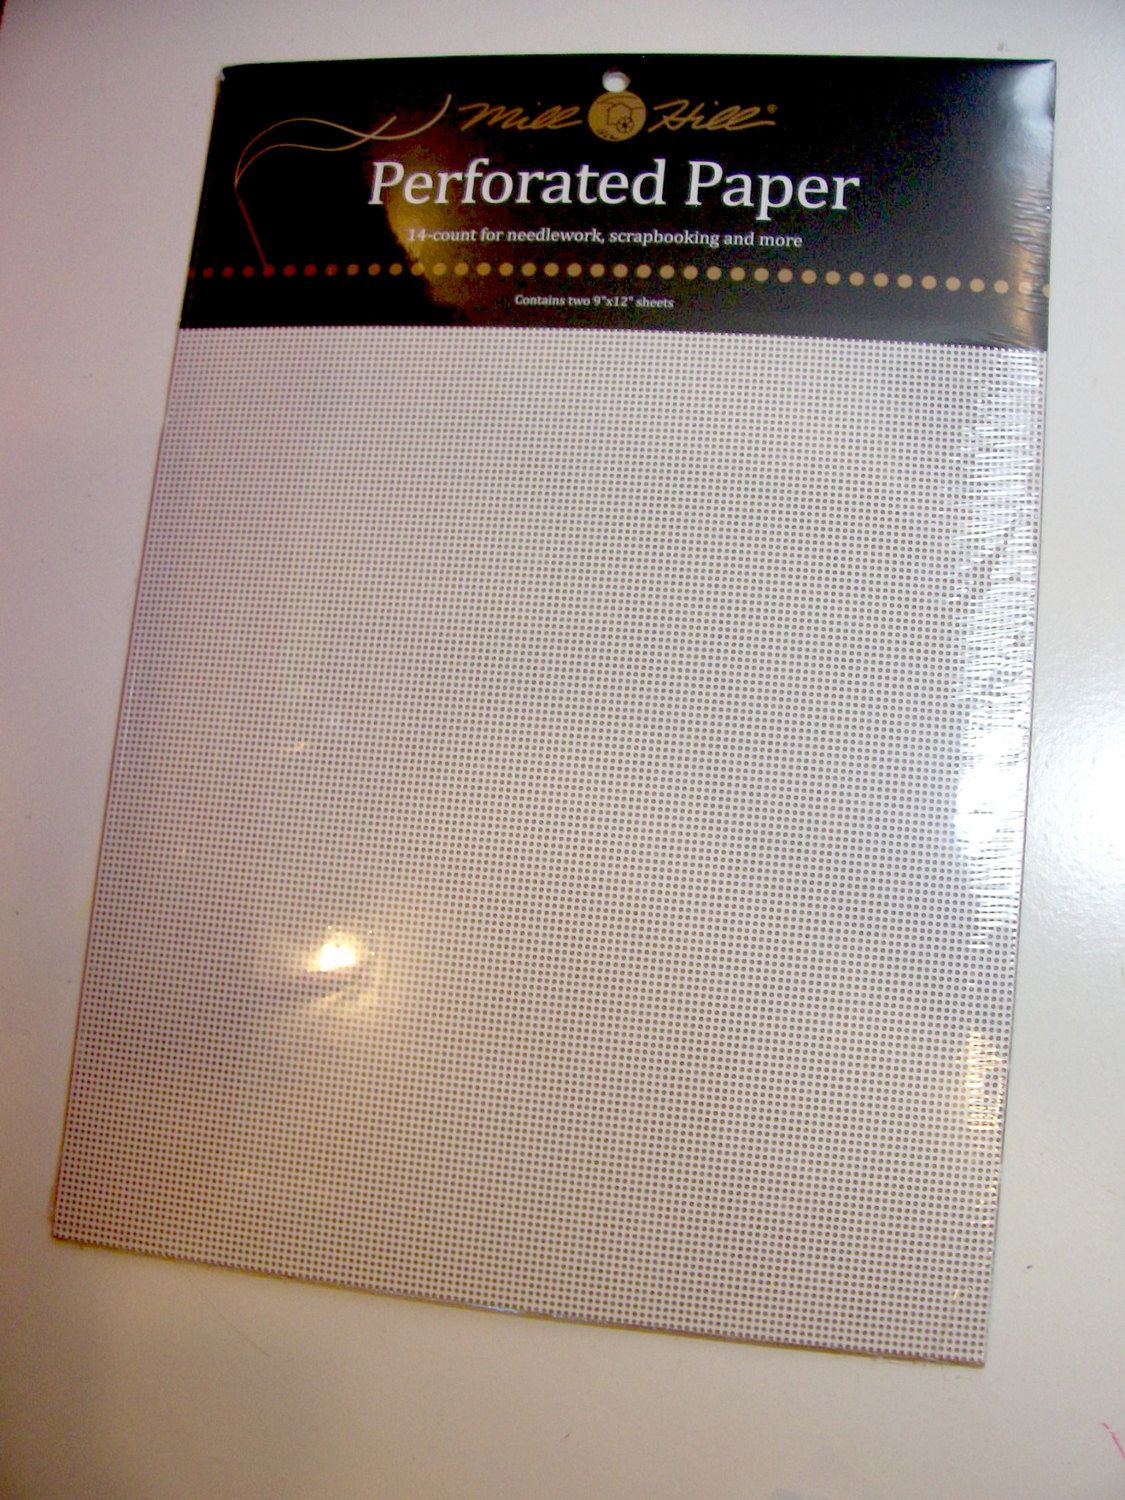 Mill Hill Perforated Paper for Needlework WI, White Perforated Paper, 14 count, 9 x 12 inch, 2 Sheets by GriffithGardens on Etsy